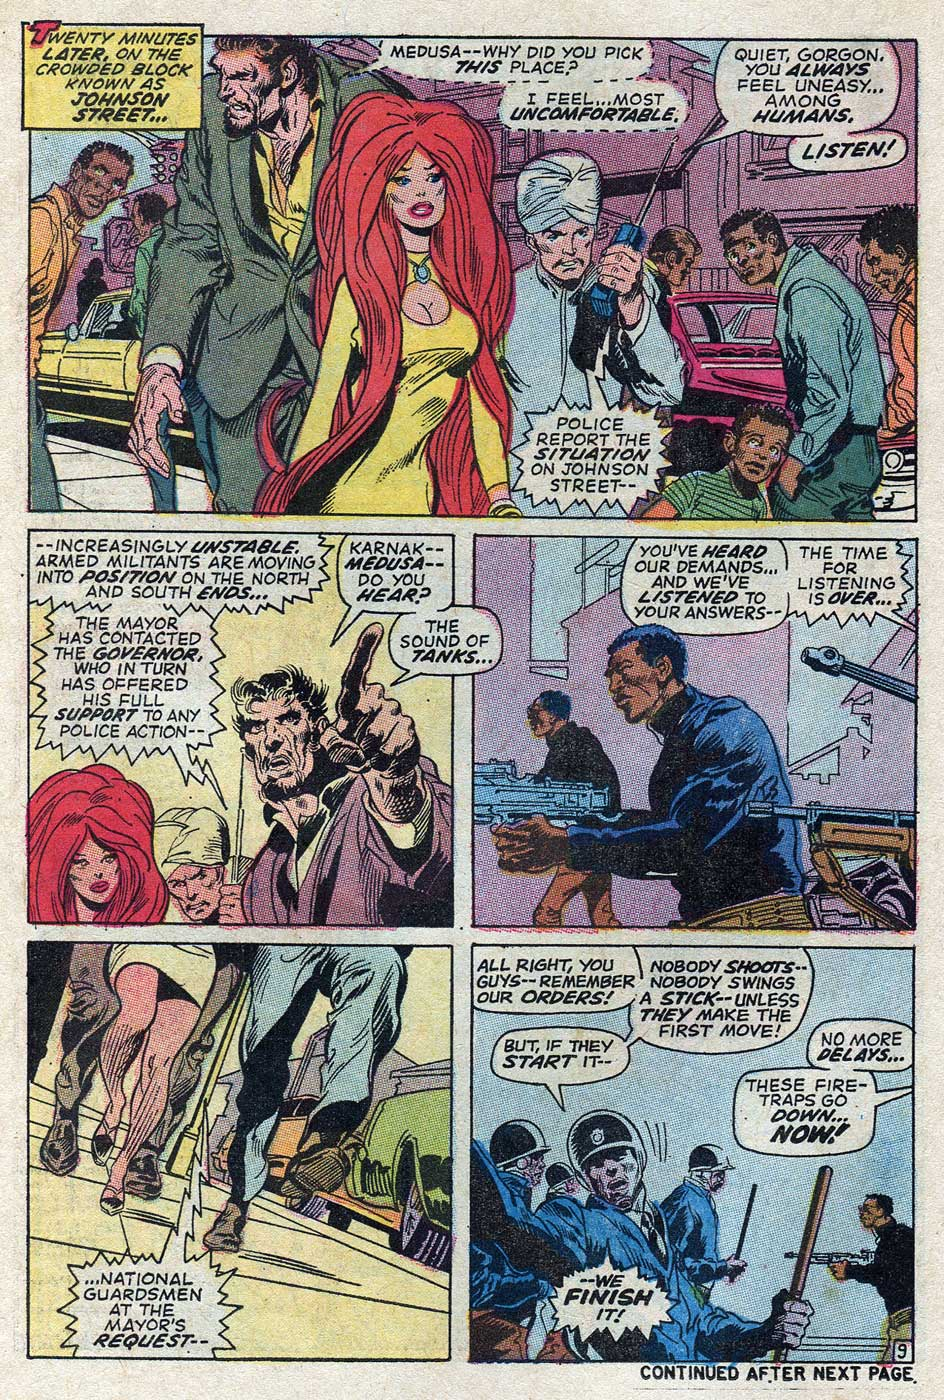 Amazing Adventures #7 featuring the Inhumans by Gerry Conway, Neal Adams and John Verpoorten